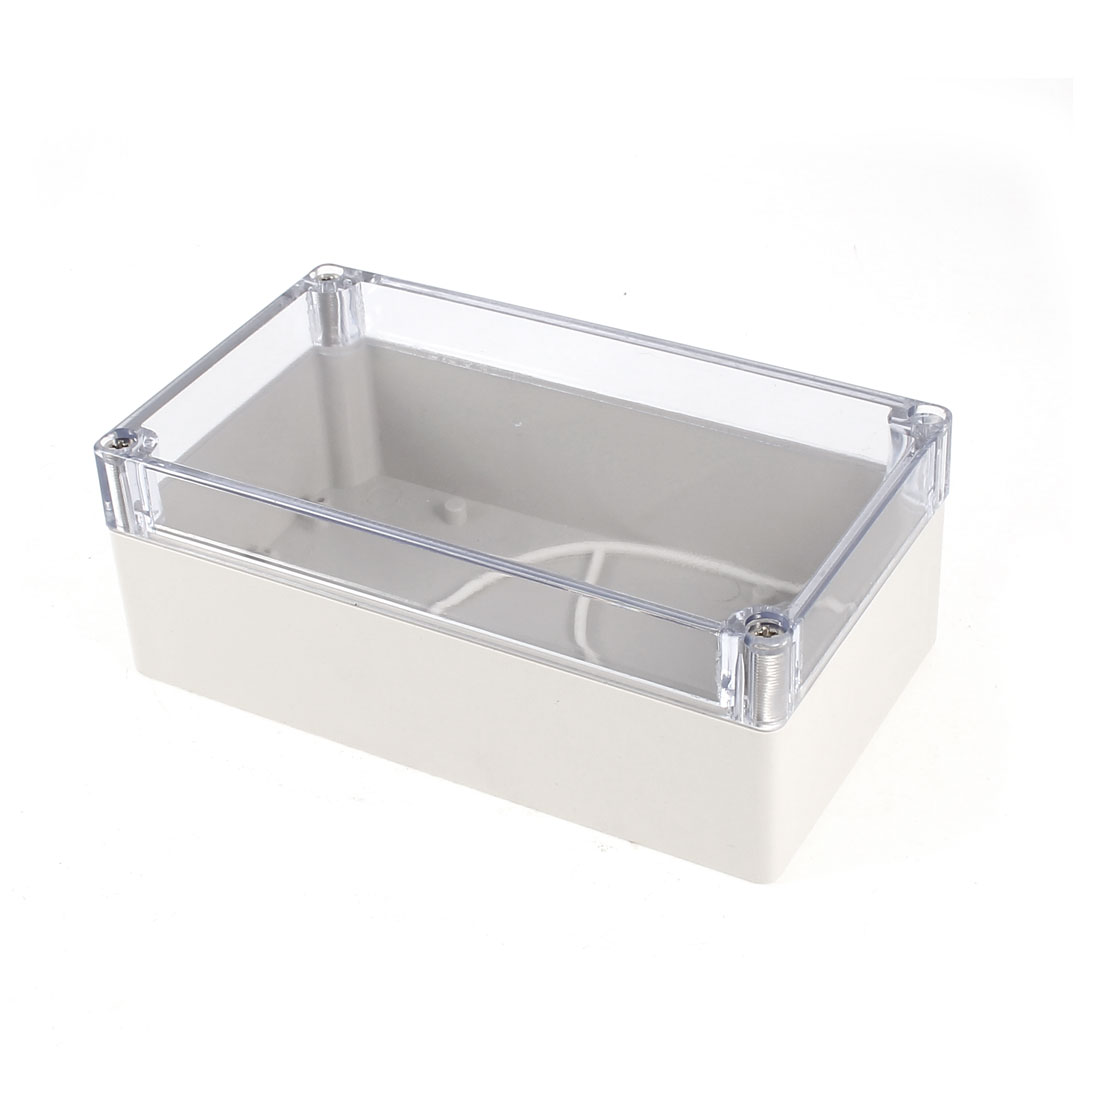 158mm x 90mm x 60mm Plastic Enclosure Case DIY Junction Box